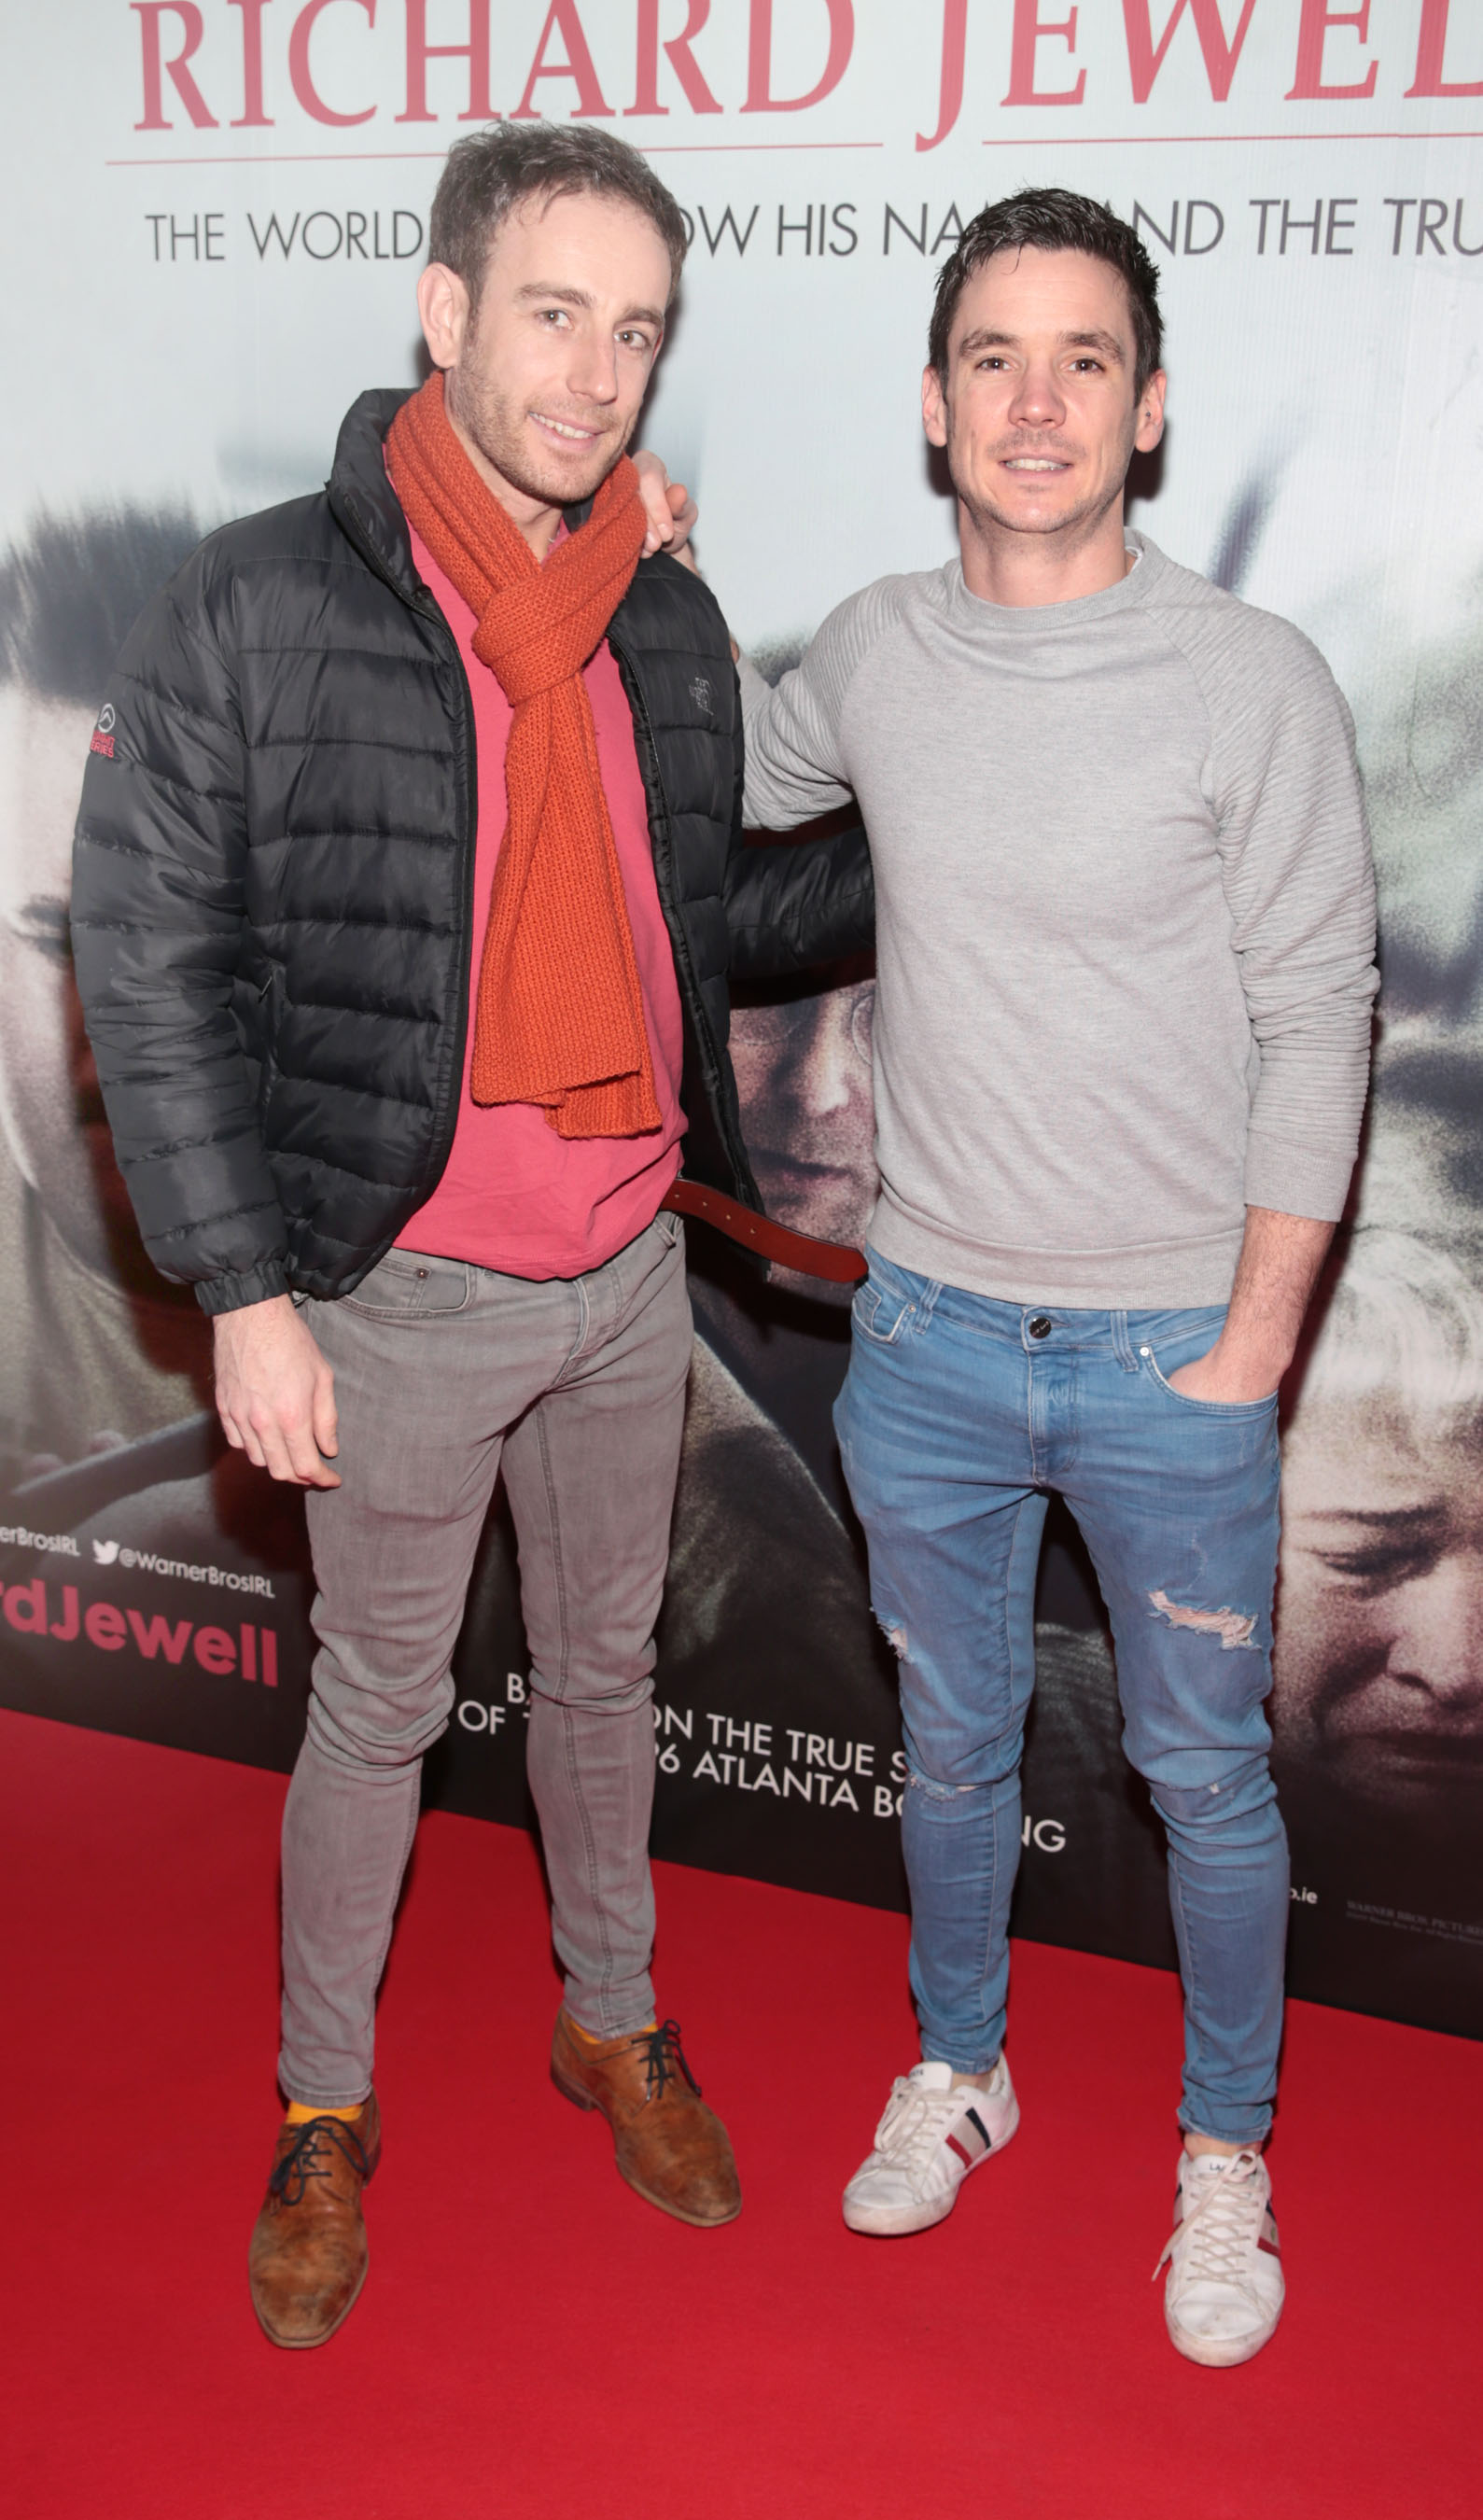 Tom Hatton and Damon Maguire pictured at the special preview screening of Richard Jewell at Cineworld, Dublin. Pic: Brian McEvoy